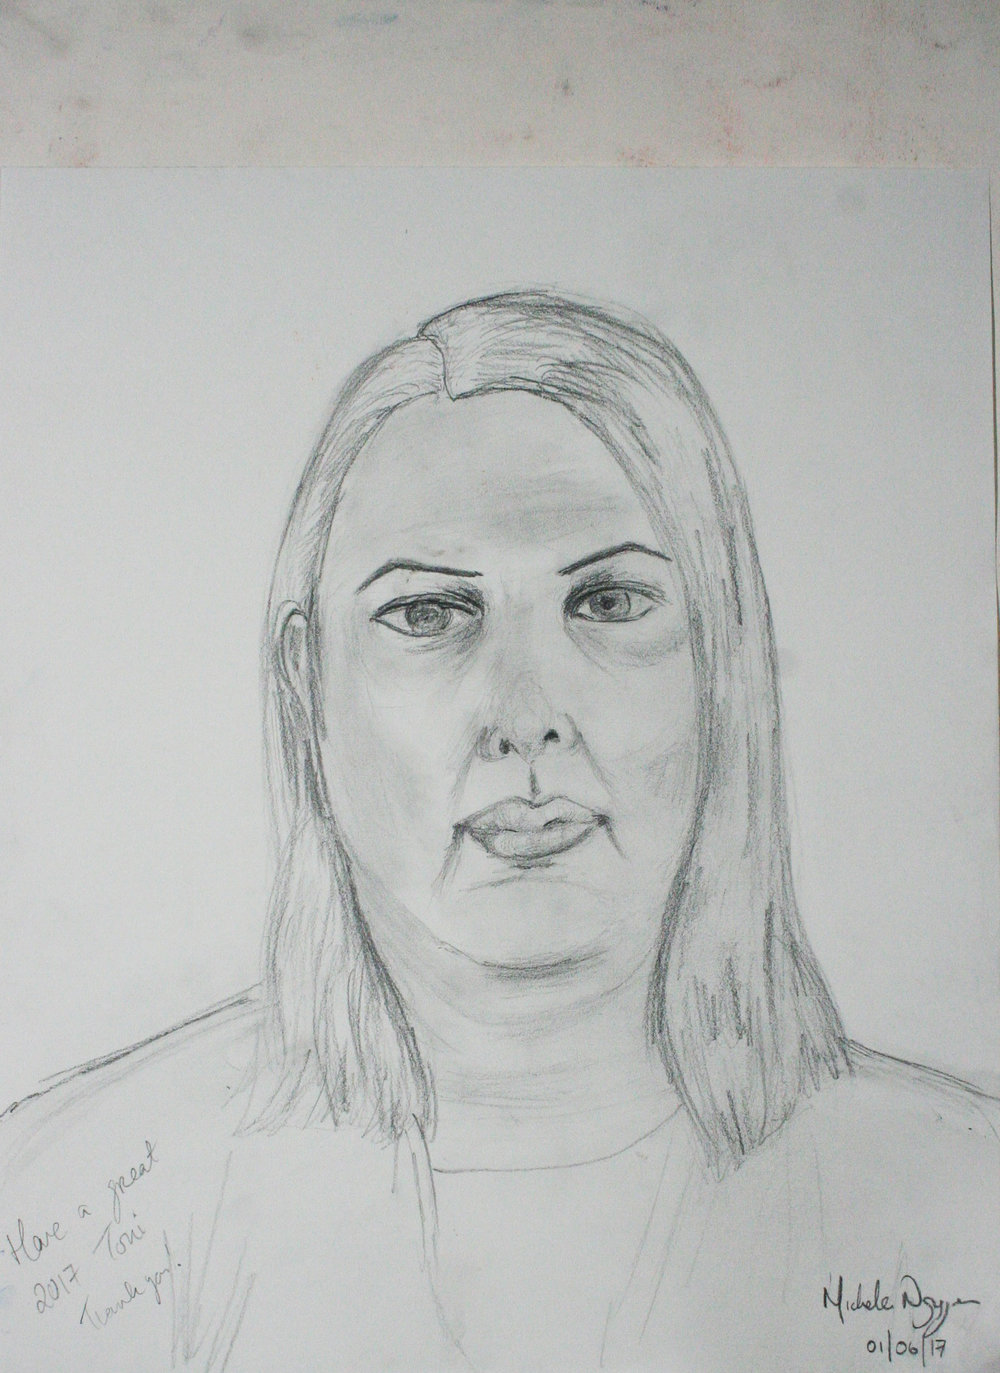 Michelle Leyden Nguyen did this hour drawing.